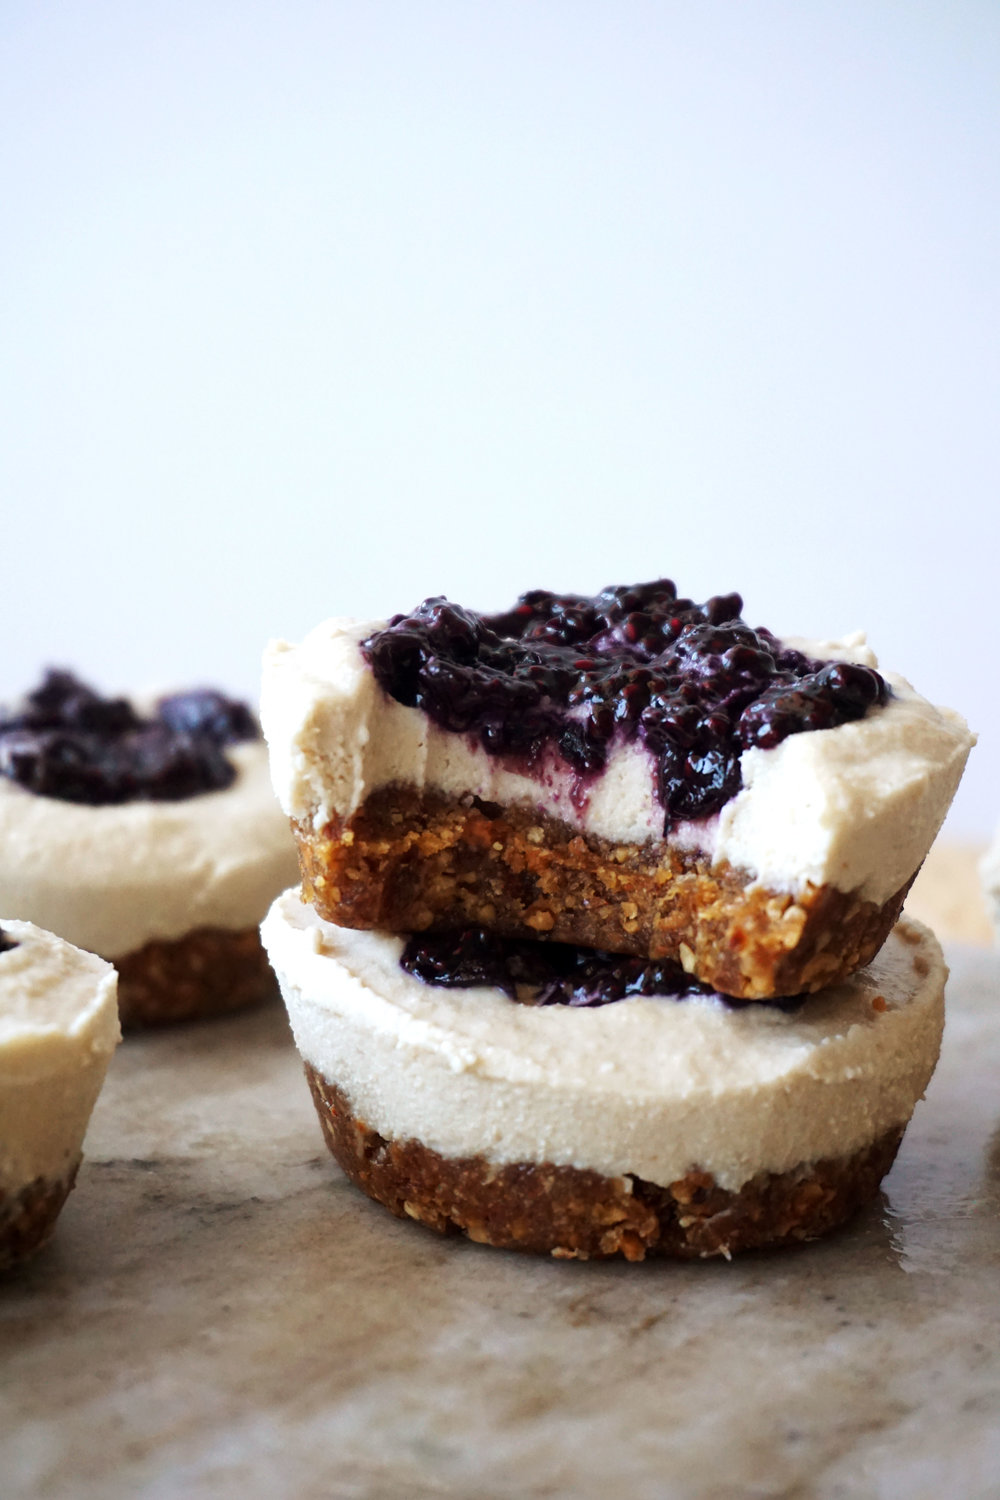 Mini Blueberry Cheesecakes (Vegan, GF)